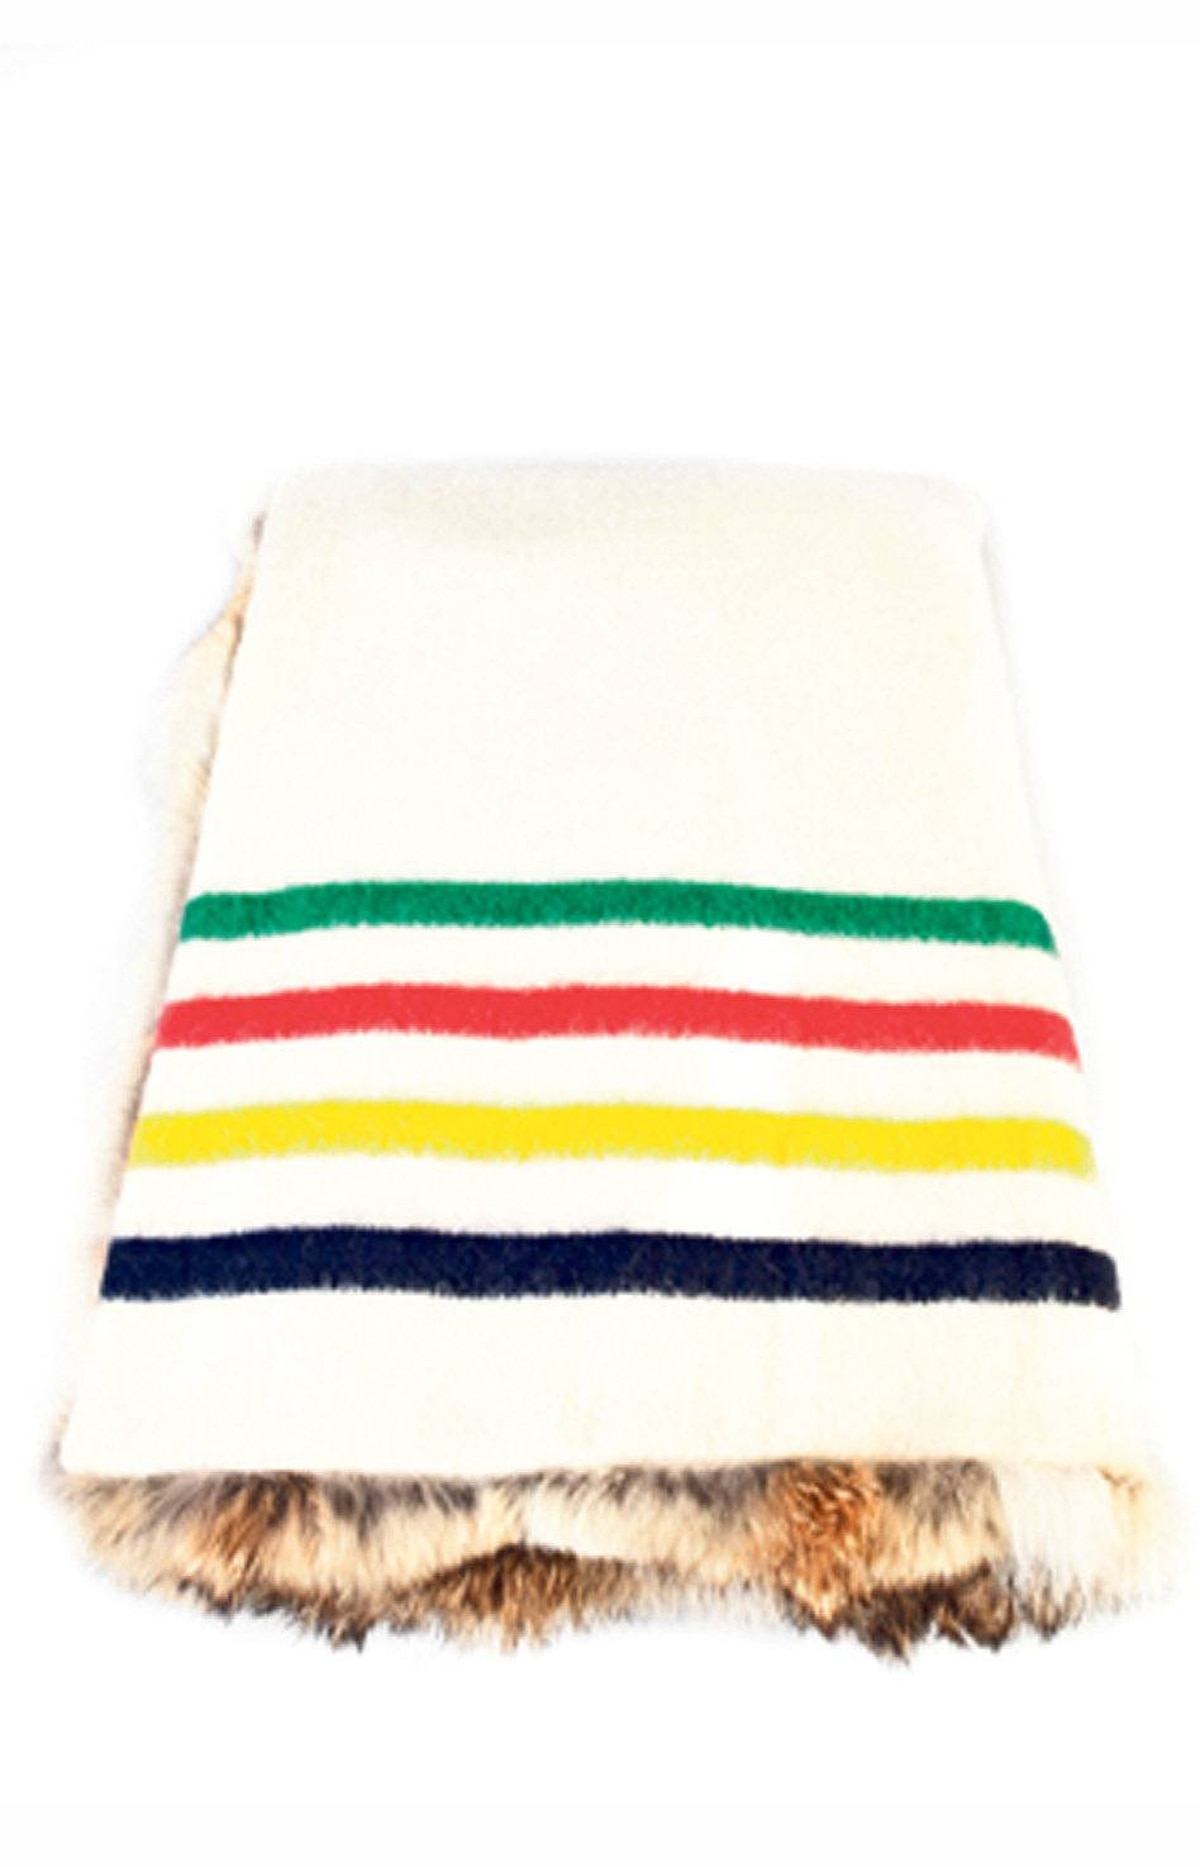 HBC natural coyote blanket, $2,150 at The Bay (www.thebay.com).